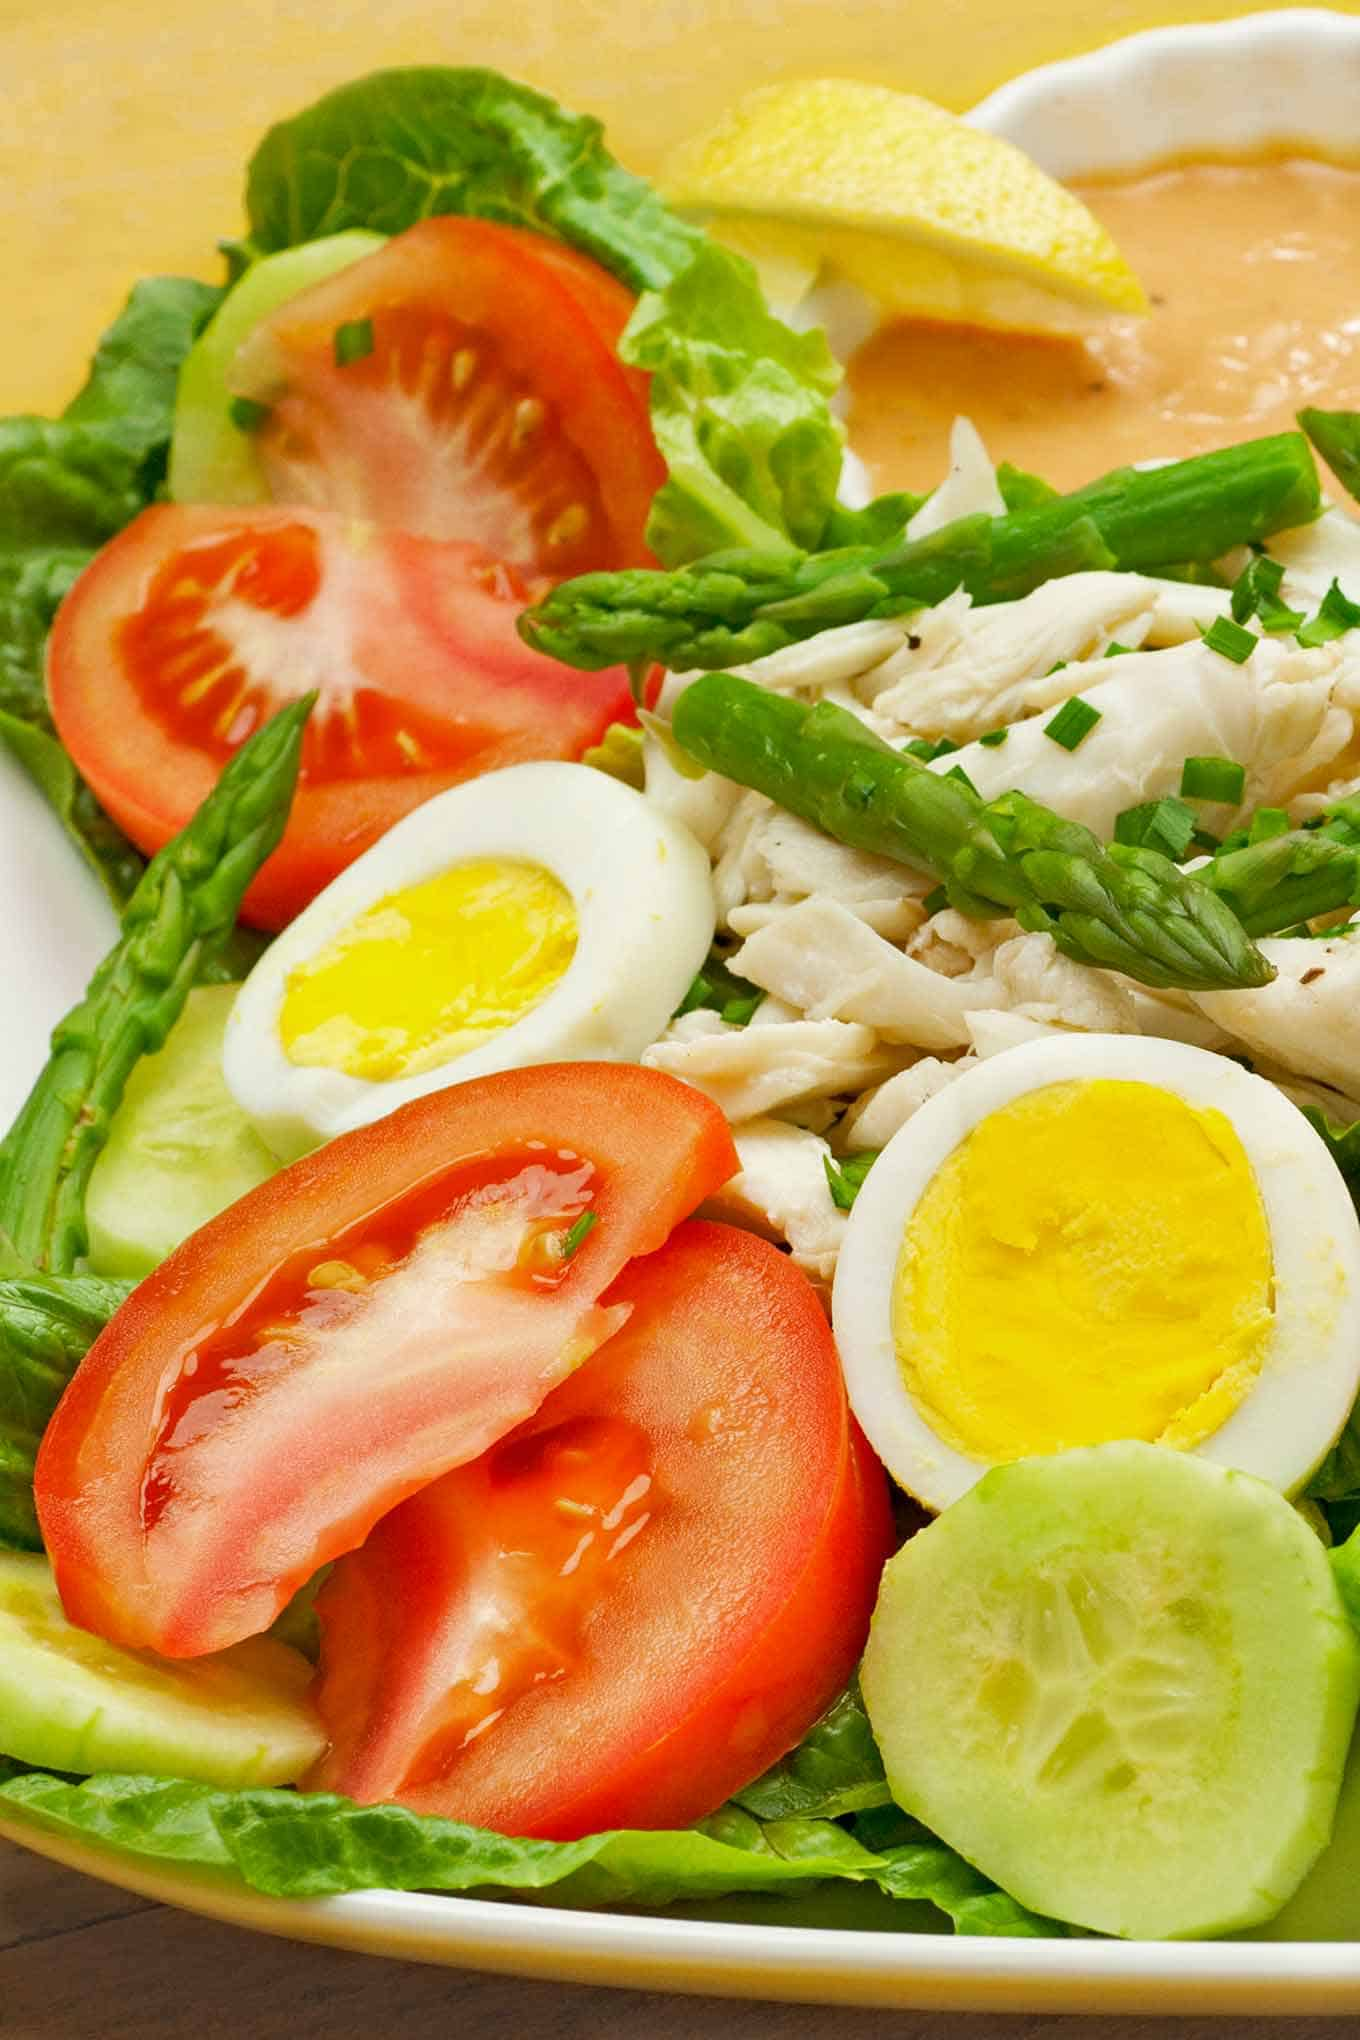 Crab Louie salad on a plate, lettuce, tomato, cucumber, hard cooked eggs, asparagus, lump crab meat, dressing, and a lemon wedge.